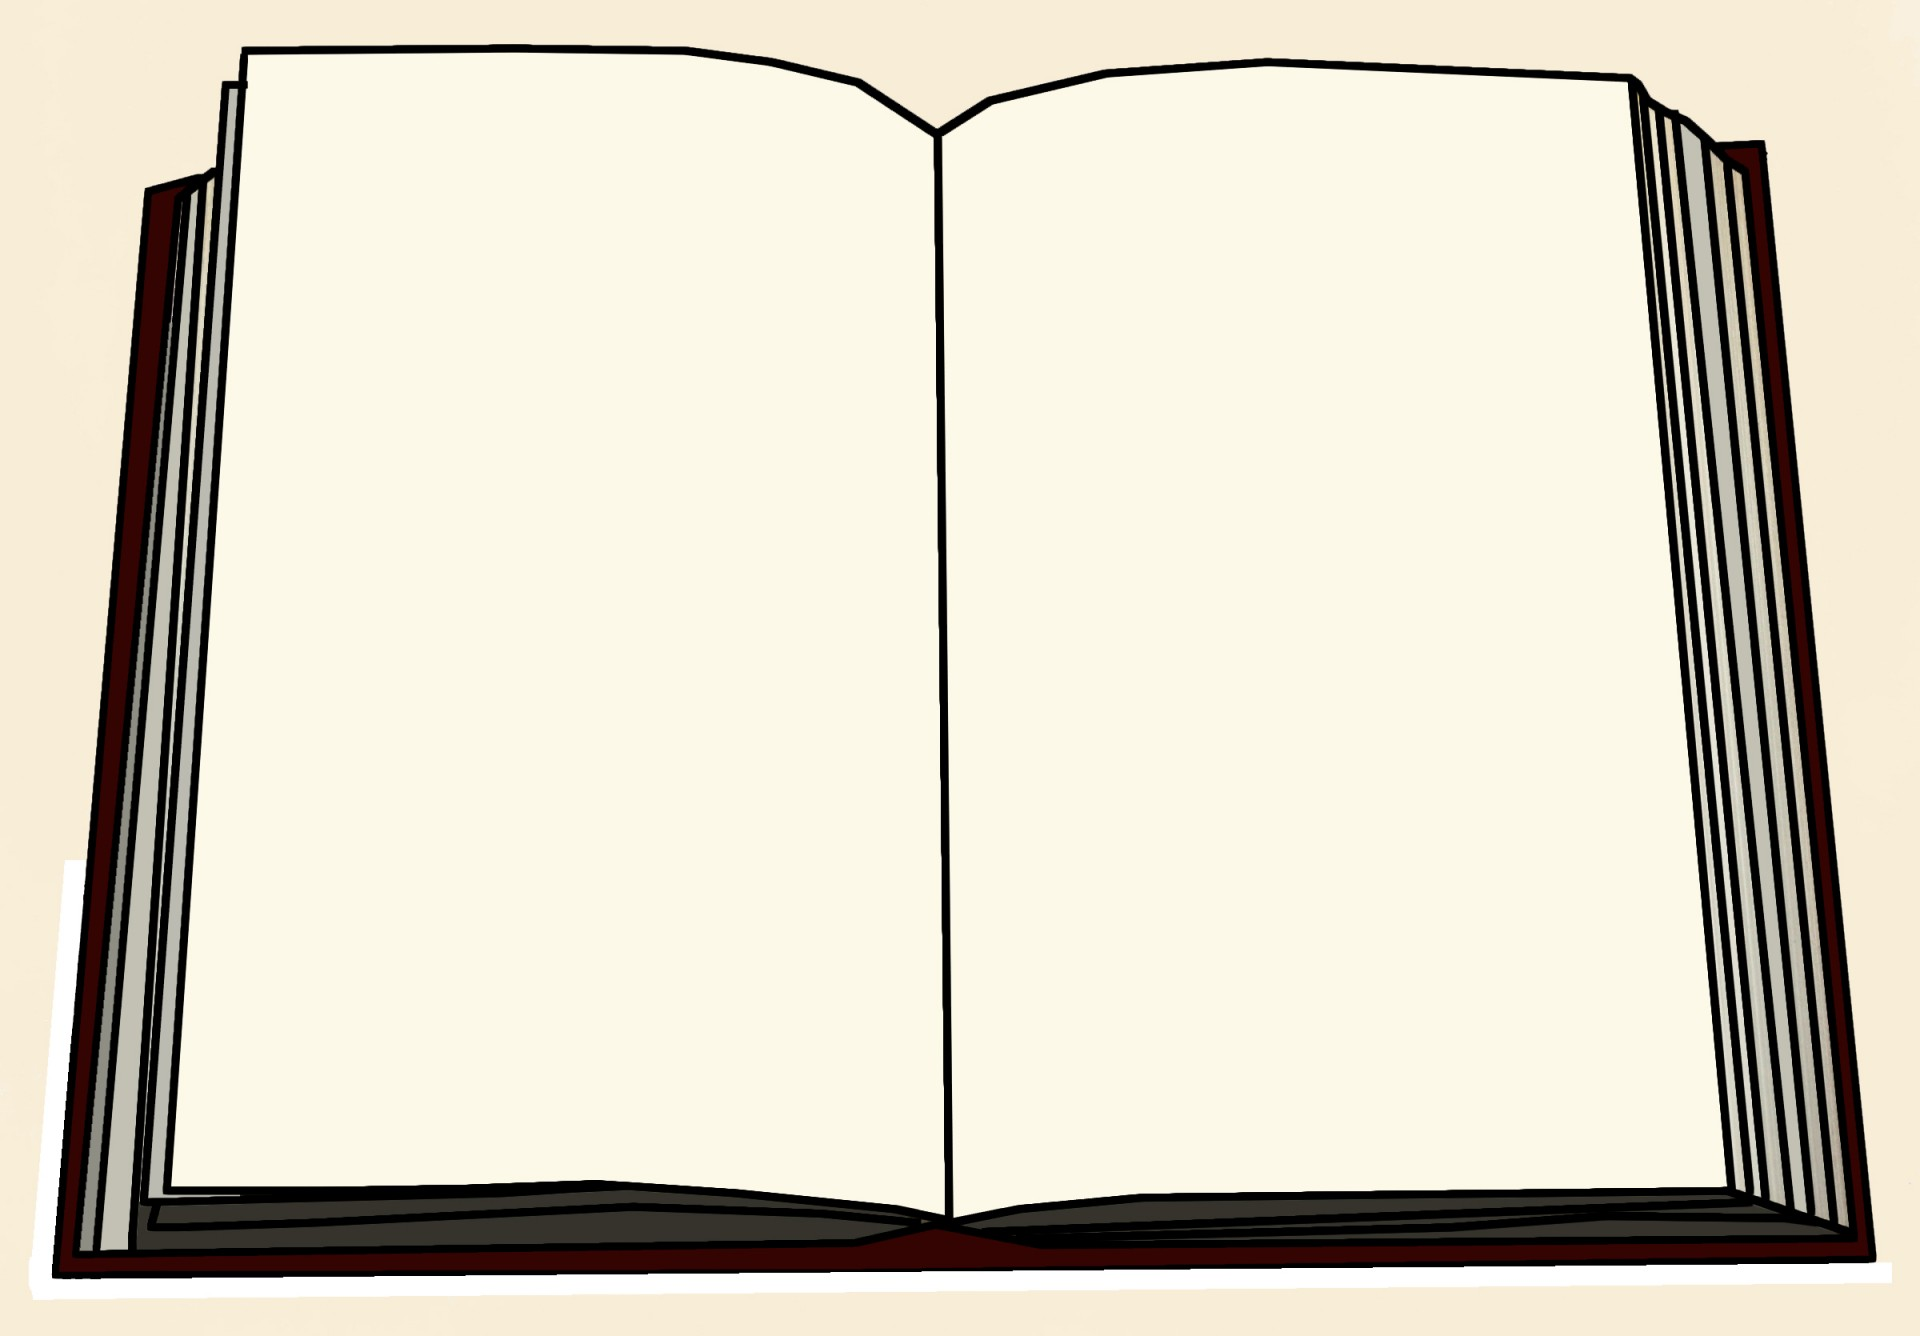 1920x1336 Blank Book Illustration Free Stock Photo